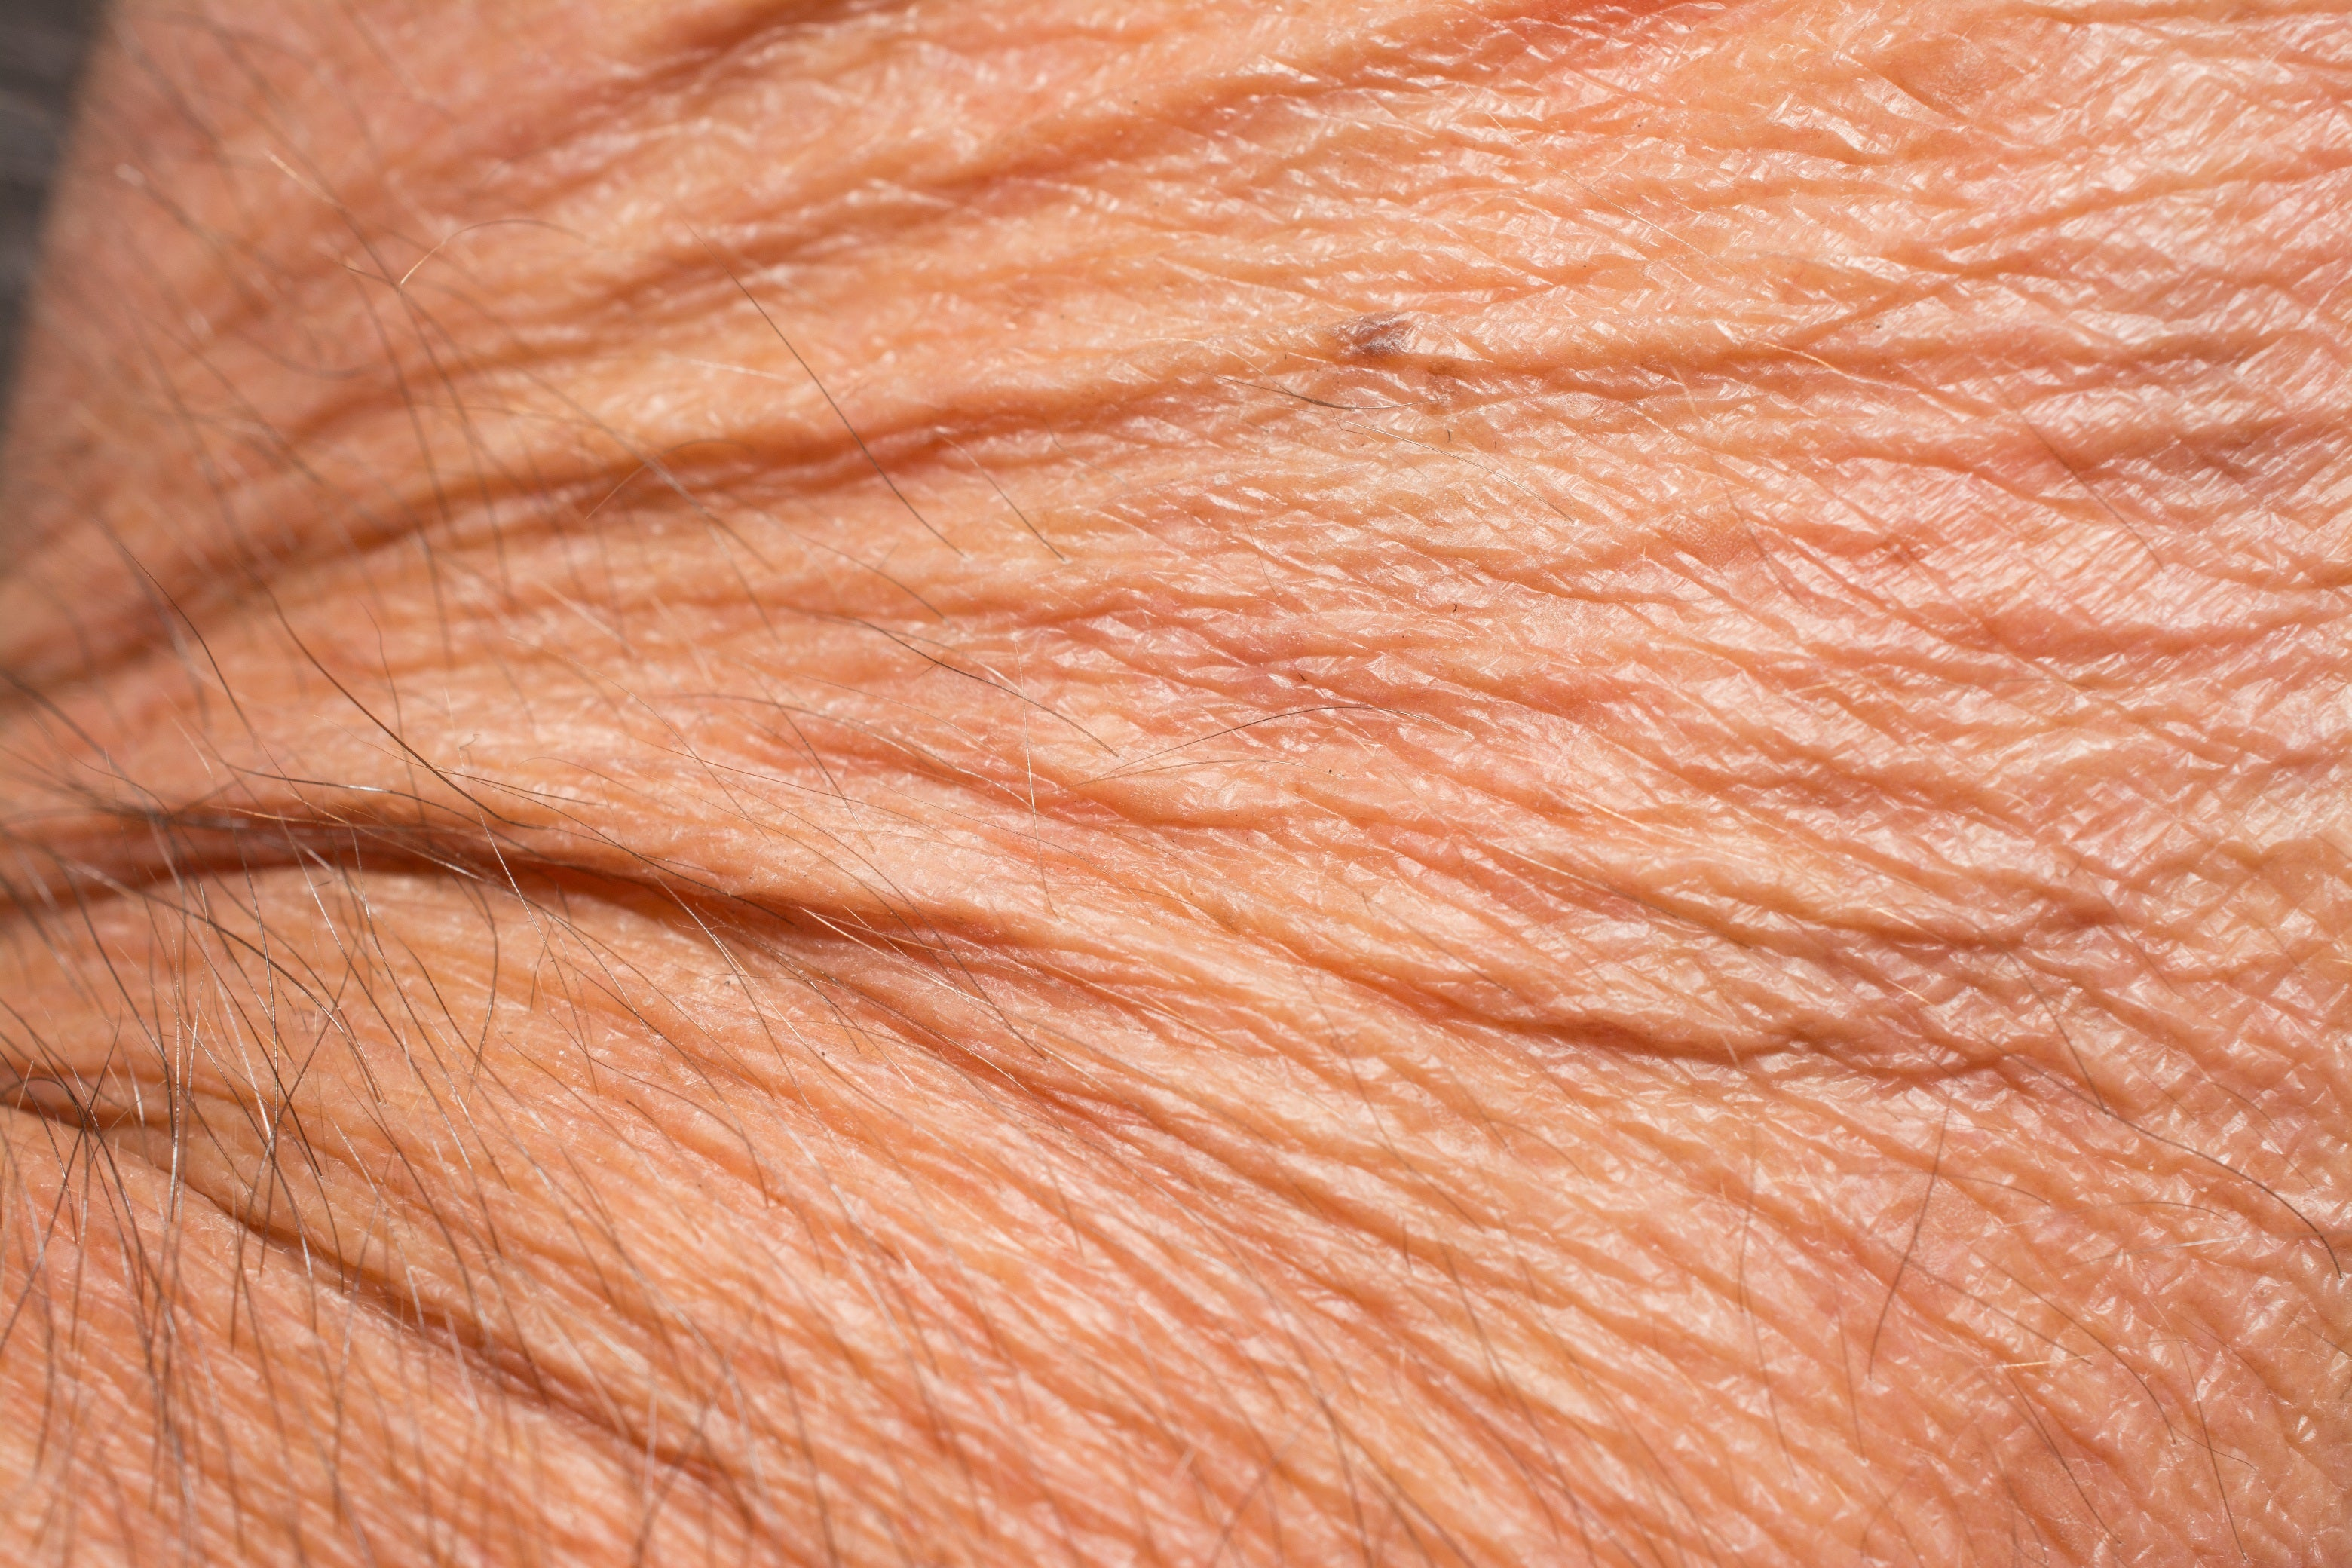 The Worst Things Men Do to Their Skin |Wrinkly Skin